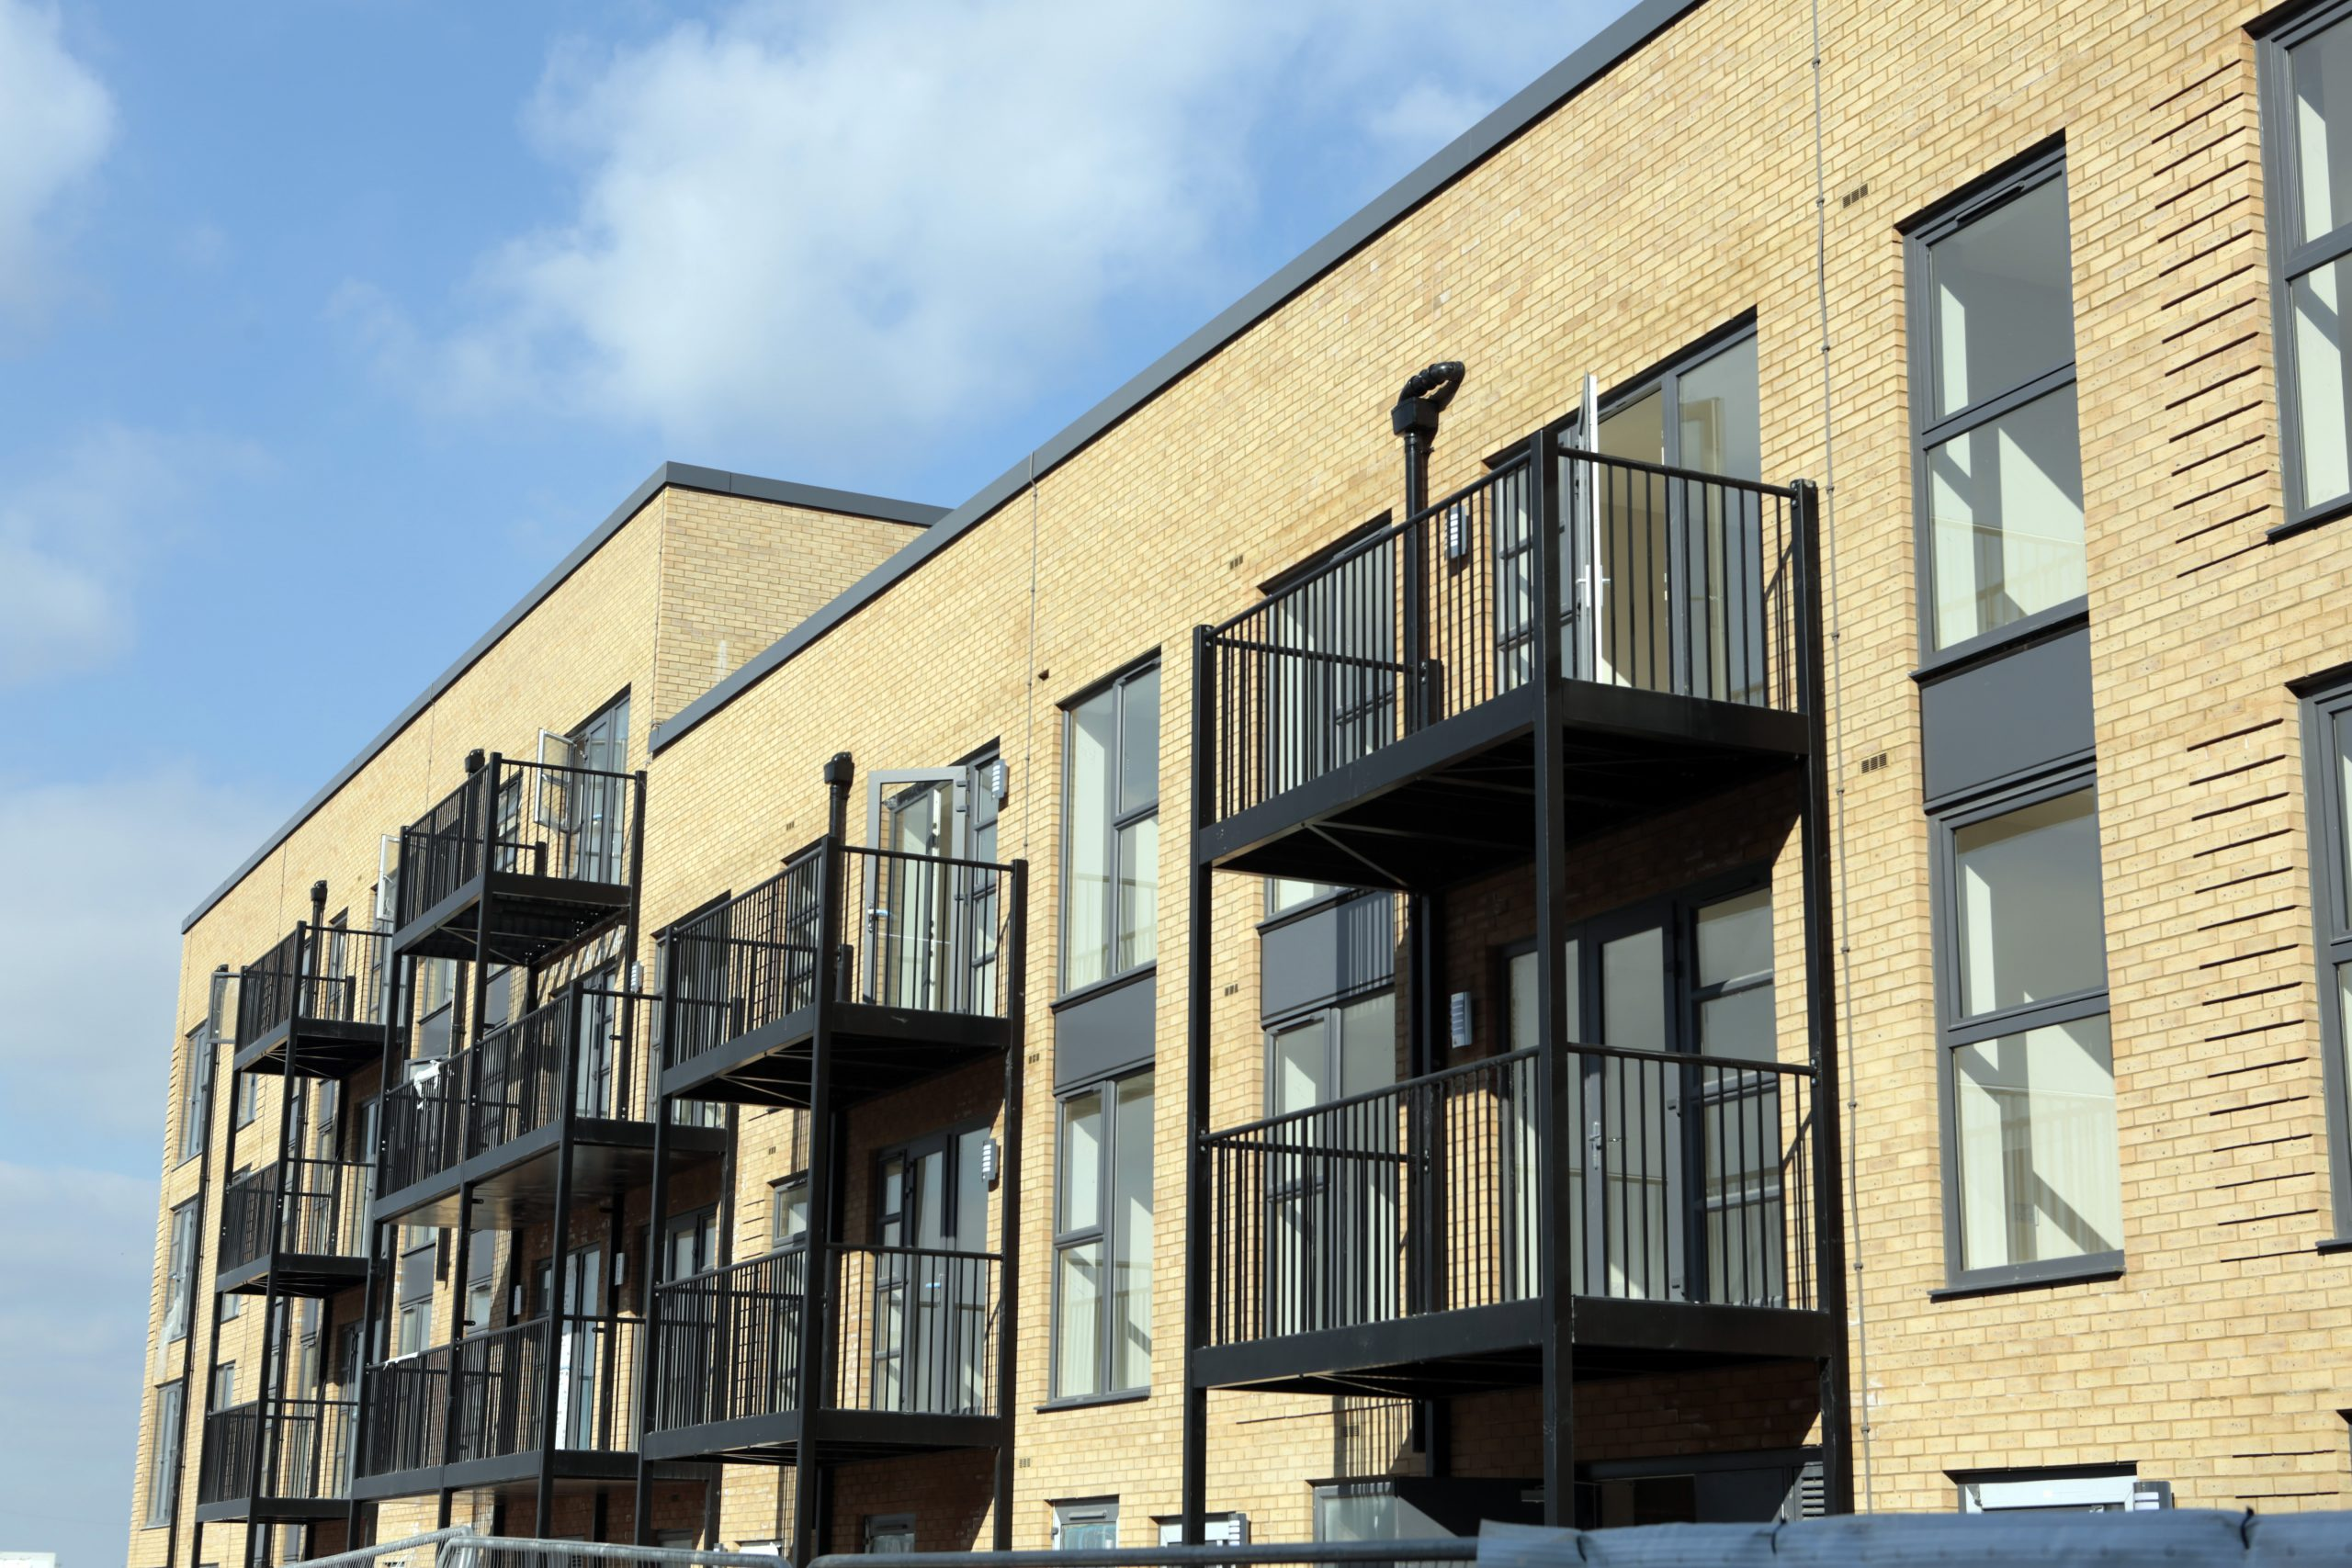 A picture of balconies